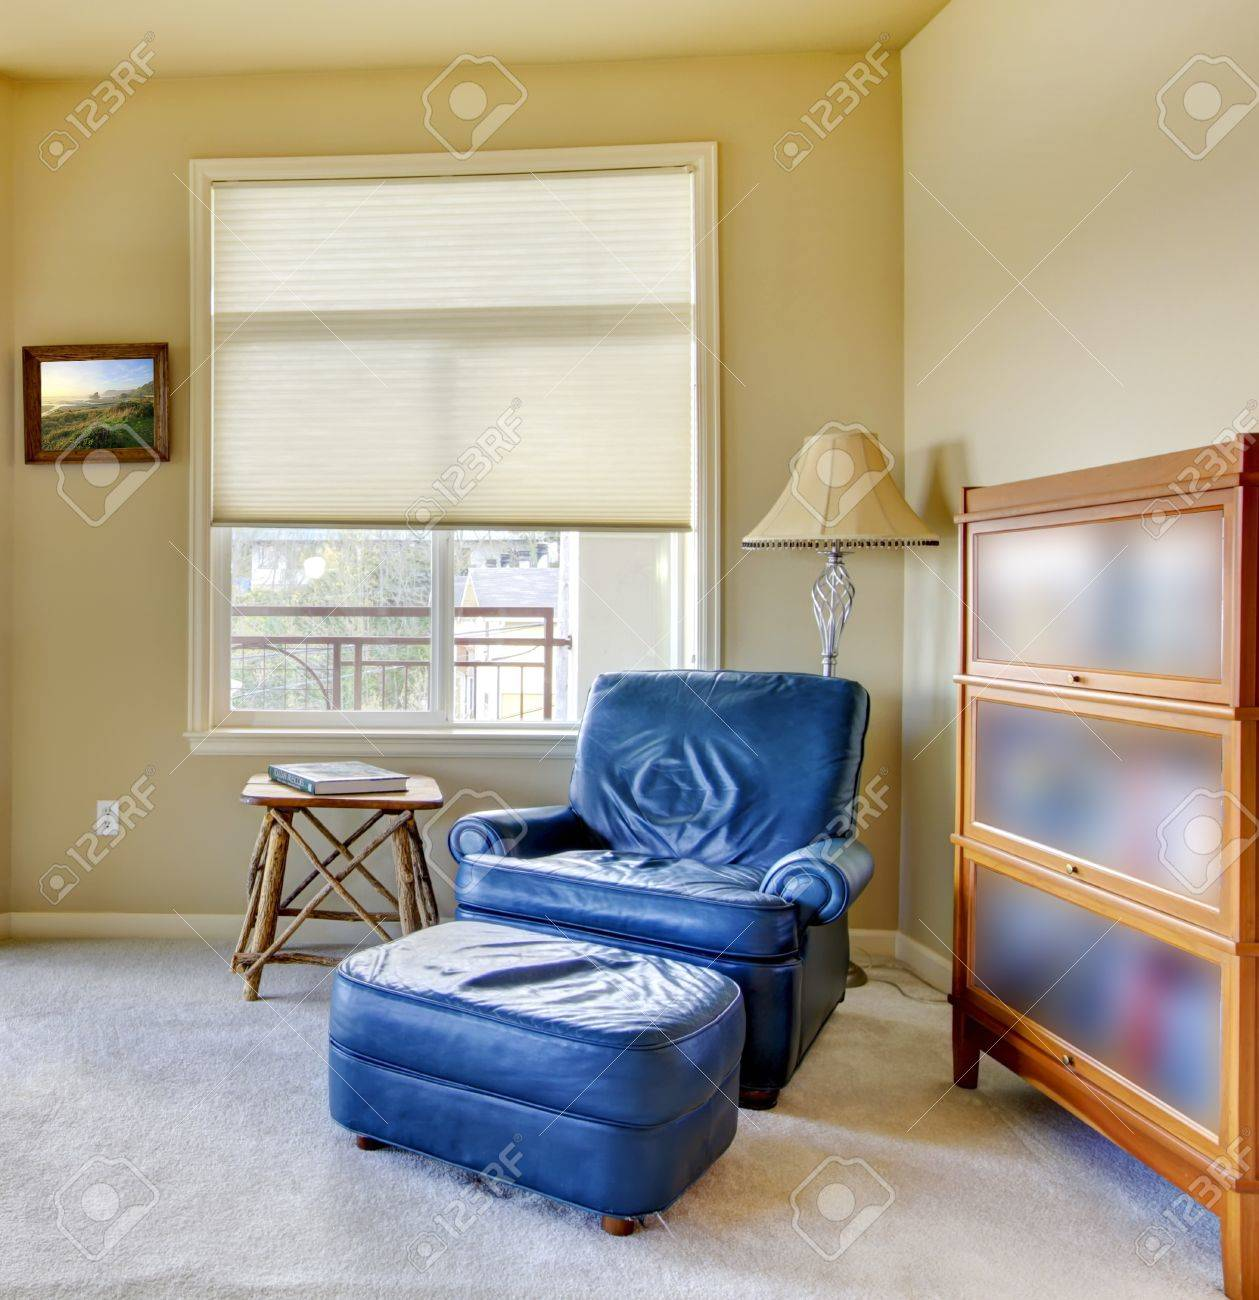 Living room with blue chair and book shelve. Stock Photo - 14287604